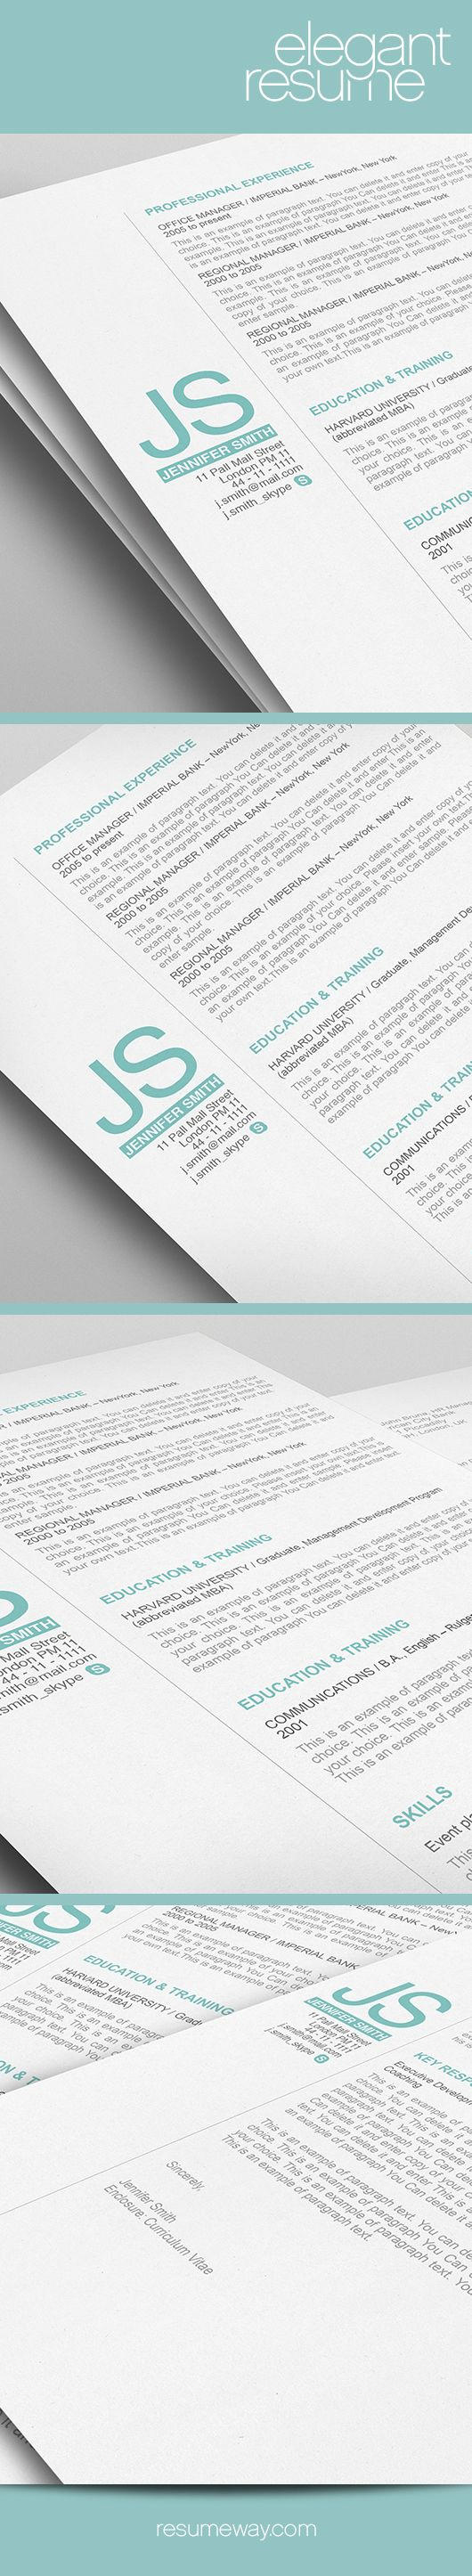 Elegant Resume Template - 110510 - Premium line of Resume & Cover Letter Templates. Easy edit with MS Word, Apple Pages - Resume, Resumes - ResumeWay